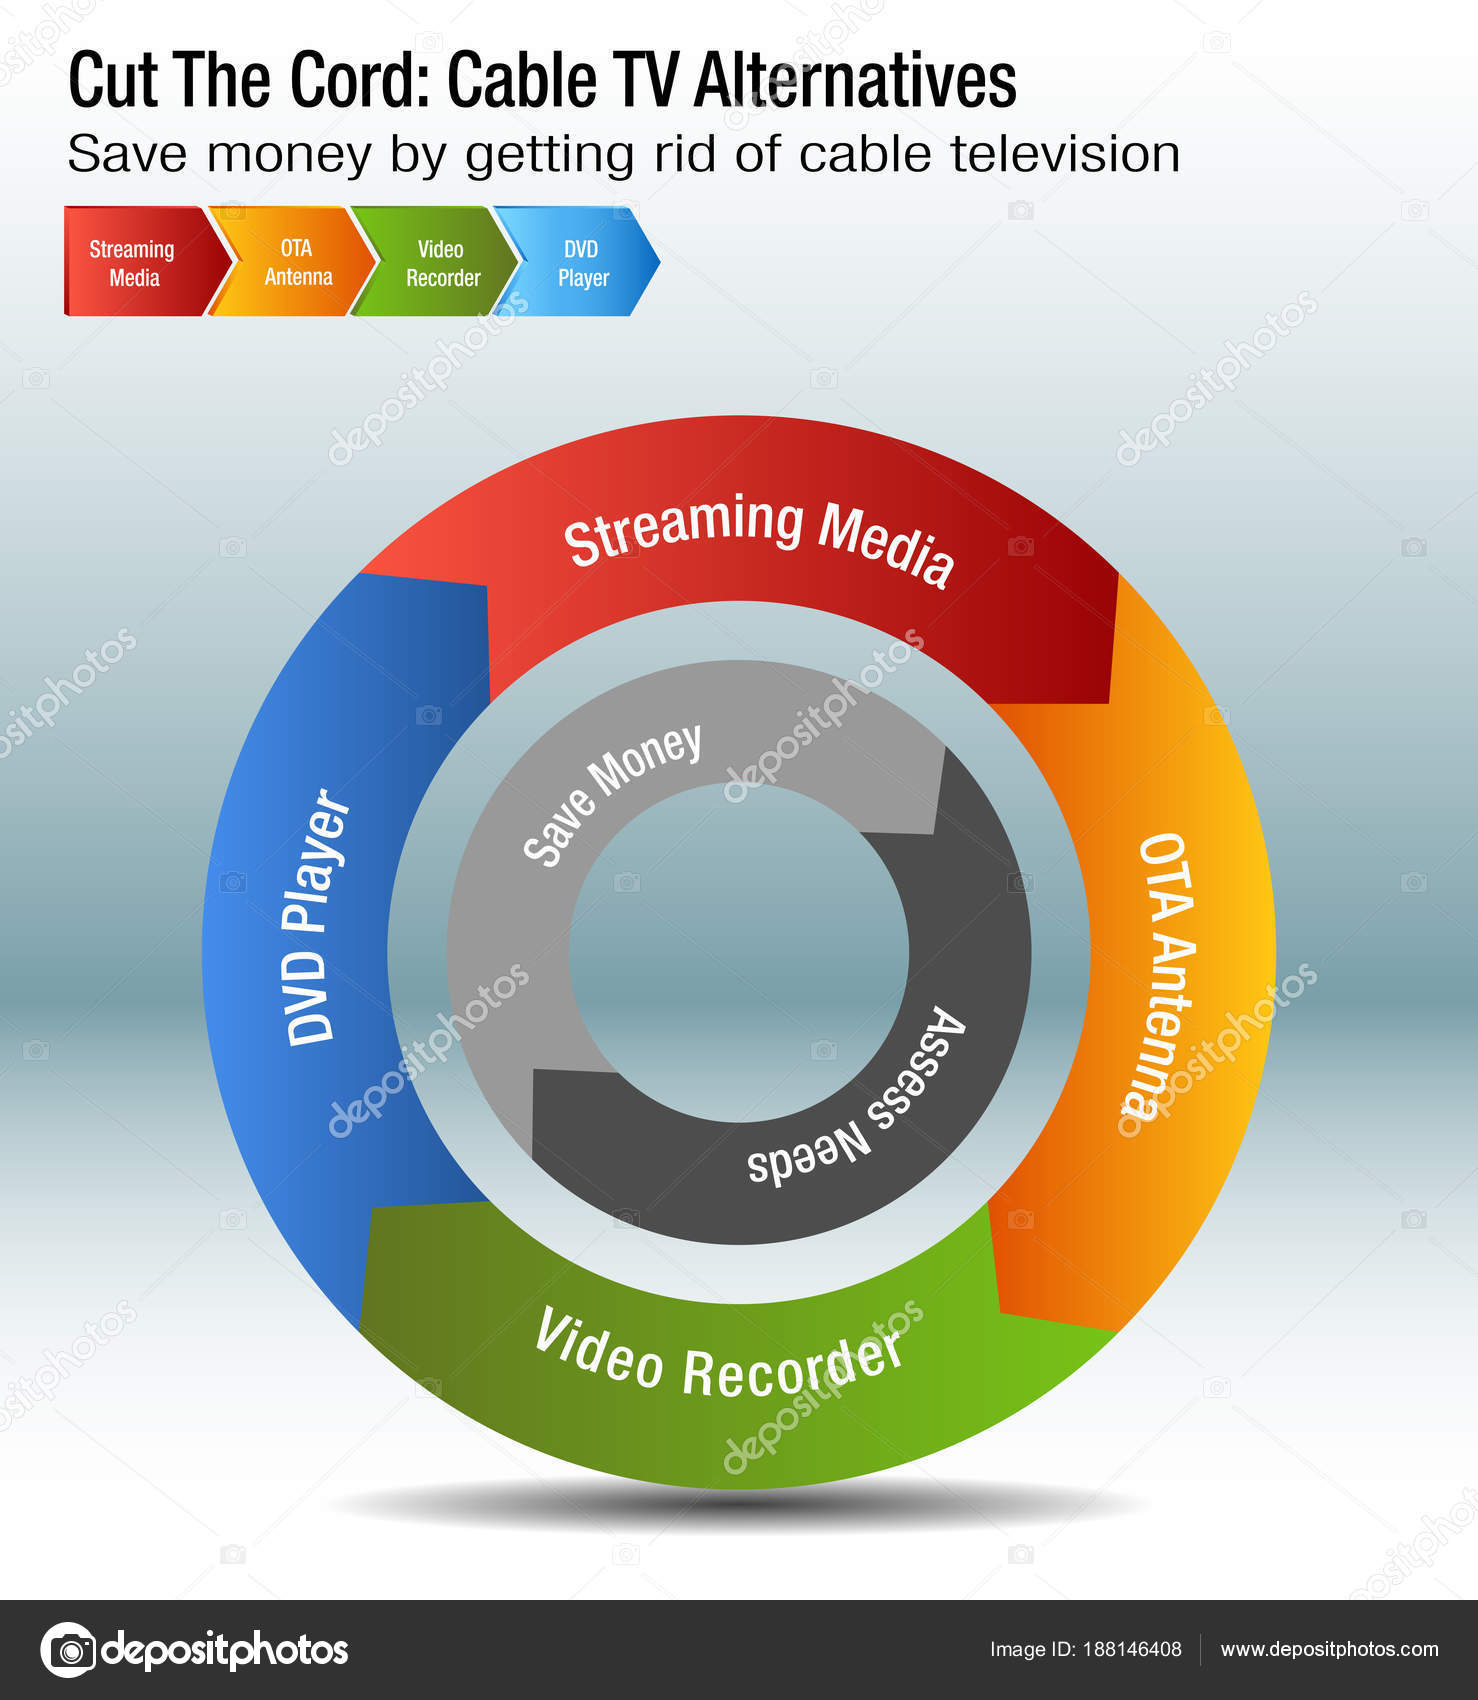 Cut The Cord Cable TV Alternatives Chart — Stock Vector ...